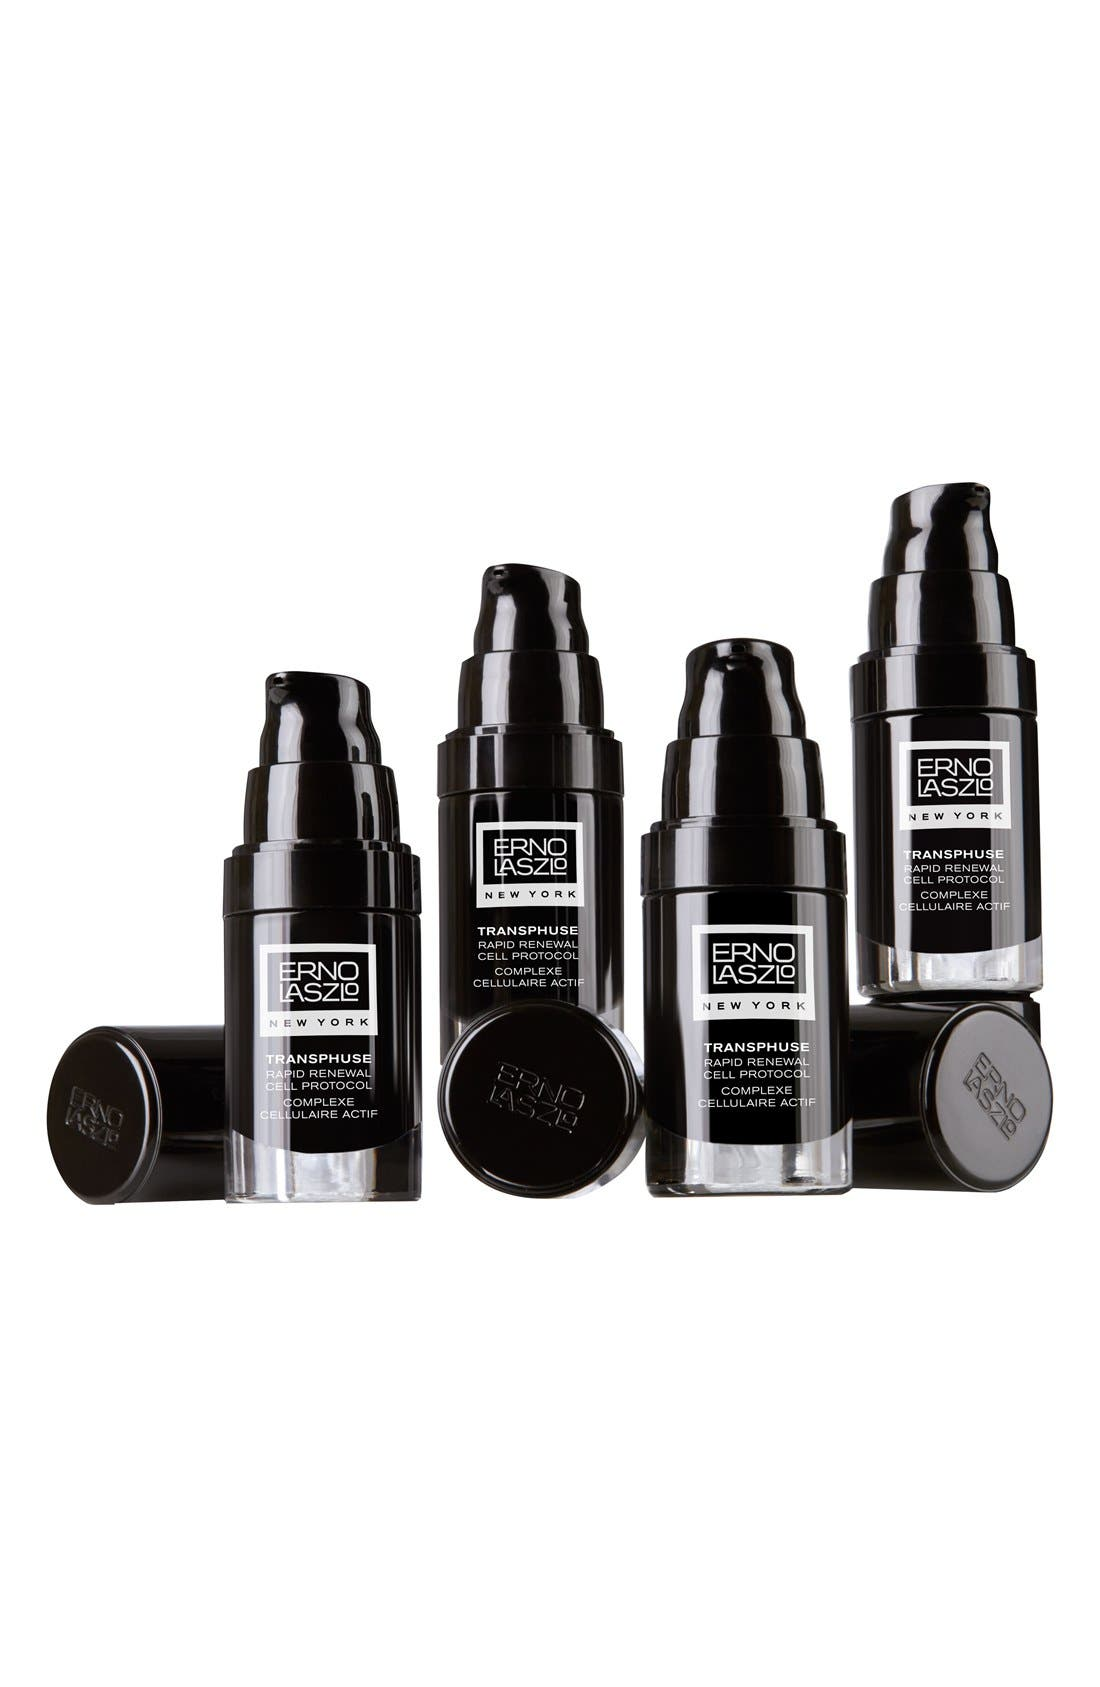 Erno Laszlo Transphuse Rapid Renewal Cell Protocol Rejuvenation Program